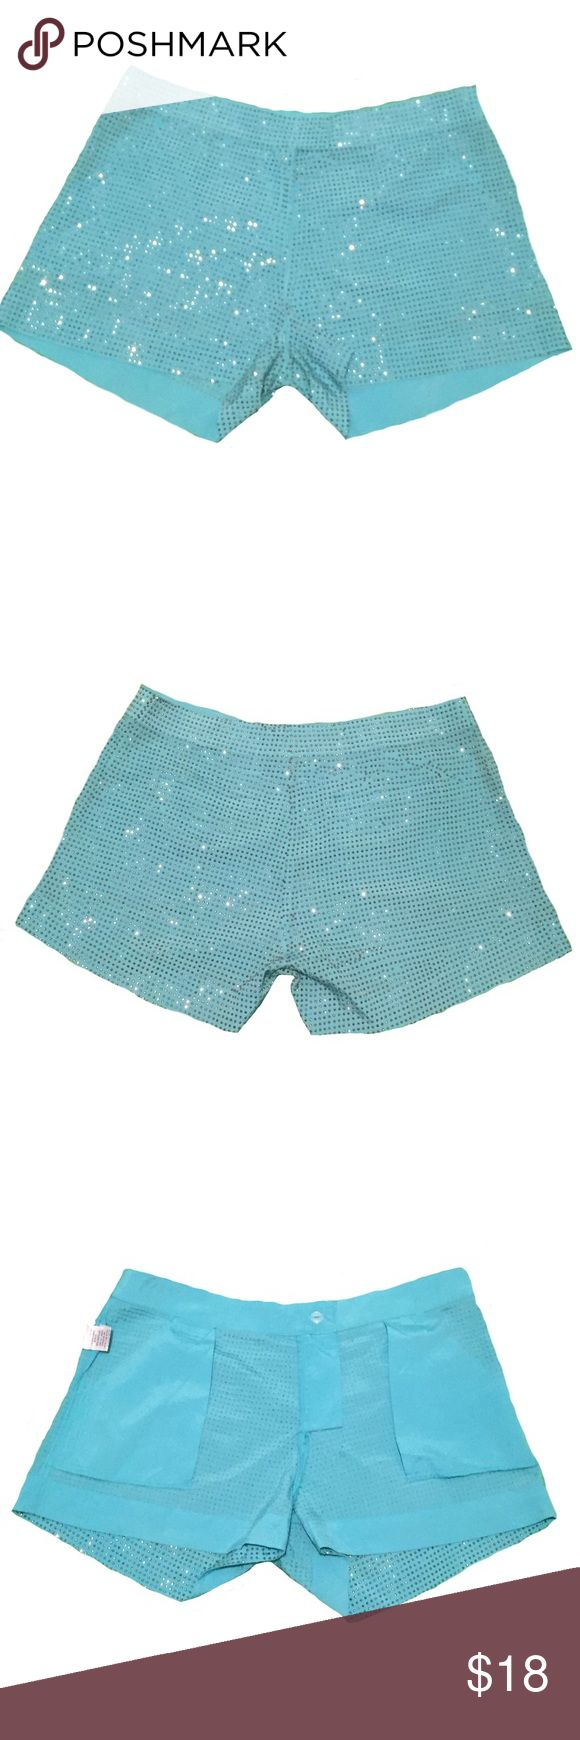 "NWOT Embellished Aqua Shorts Size M ✨Size Medium ✨16"" Hip to Hip Across Waistband ✨3"" Inseam ✨Unlined ✨Stud Embellishments ✨Hidden Hook, Button & Zip Closure ✨Slant Front Pockets  ✨Hidden Faux Back Pockets  💥Last two photos are close ups of embellishments. Shorts color are accurately depicted in first 4 photos💥 Shorts"